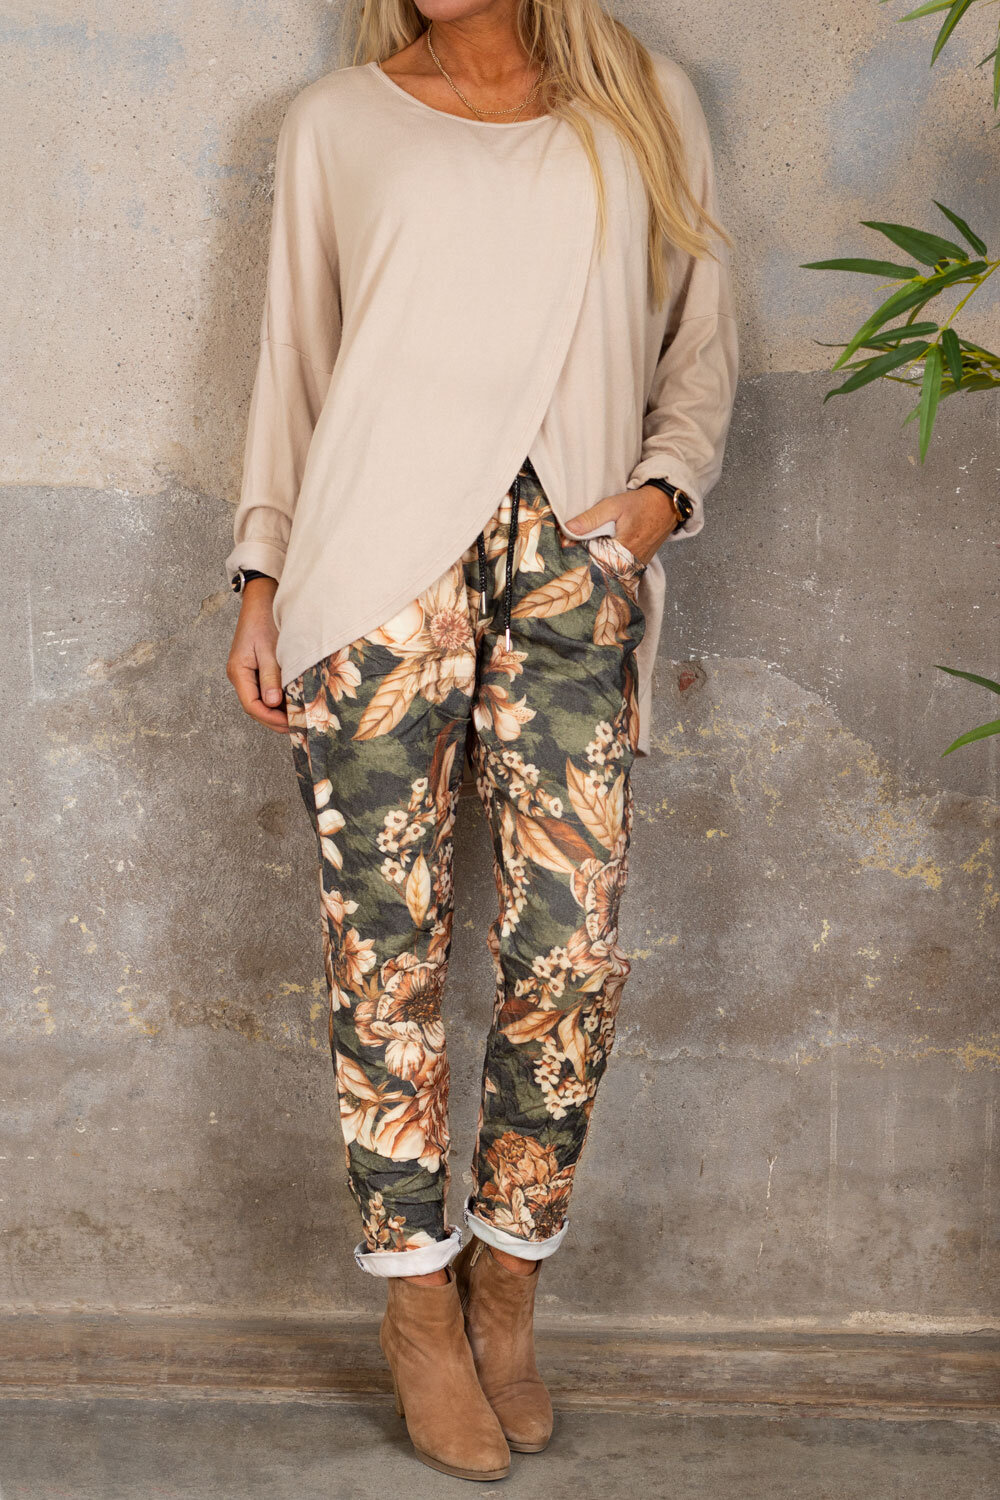 Stretch pants - Large flowers - Khaki/Taupe